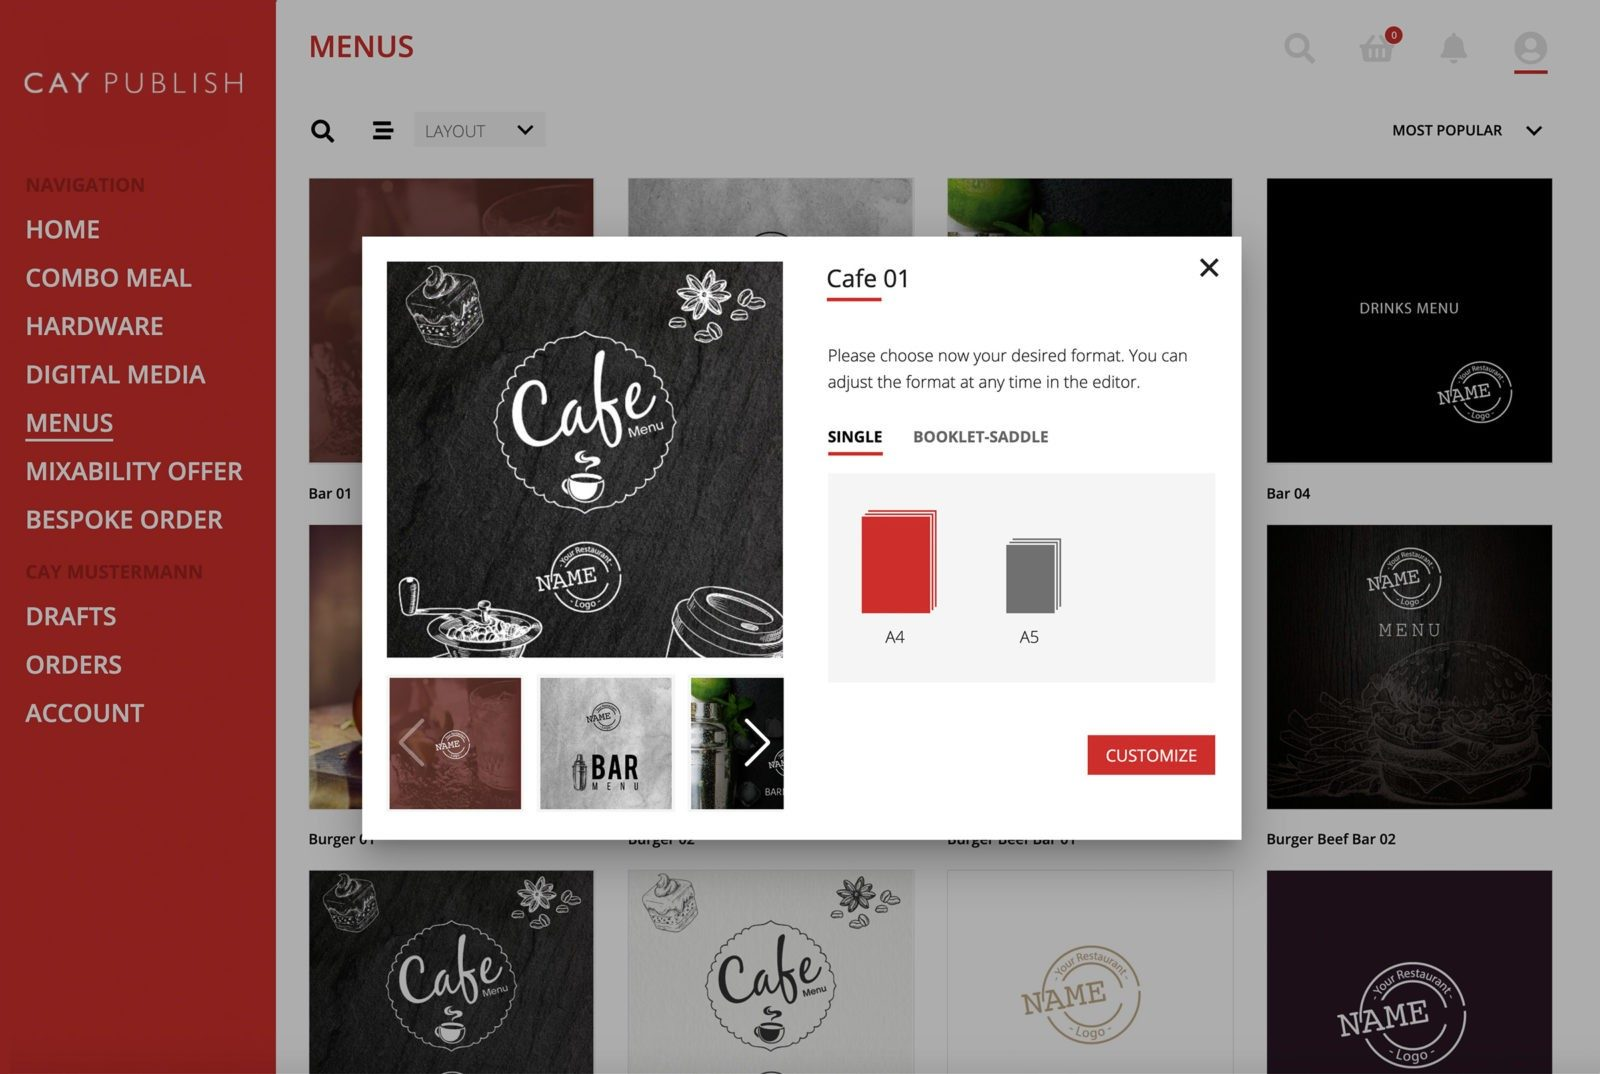 Menu Card Selection in CAY PUBLISH